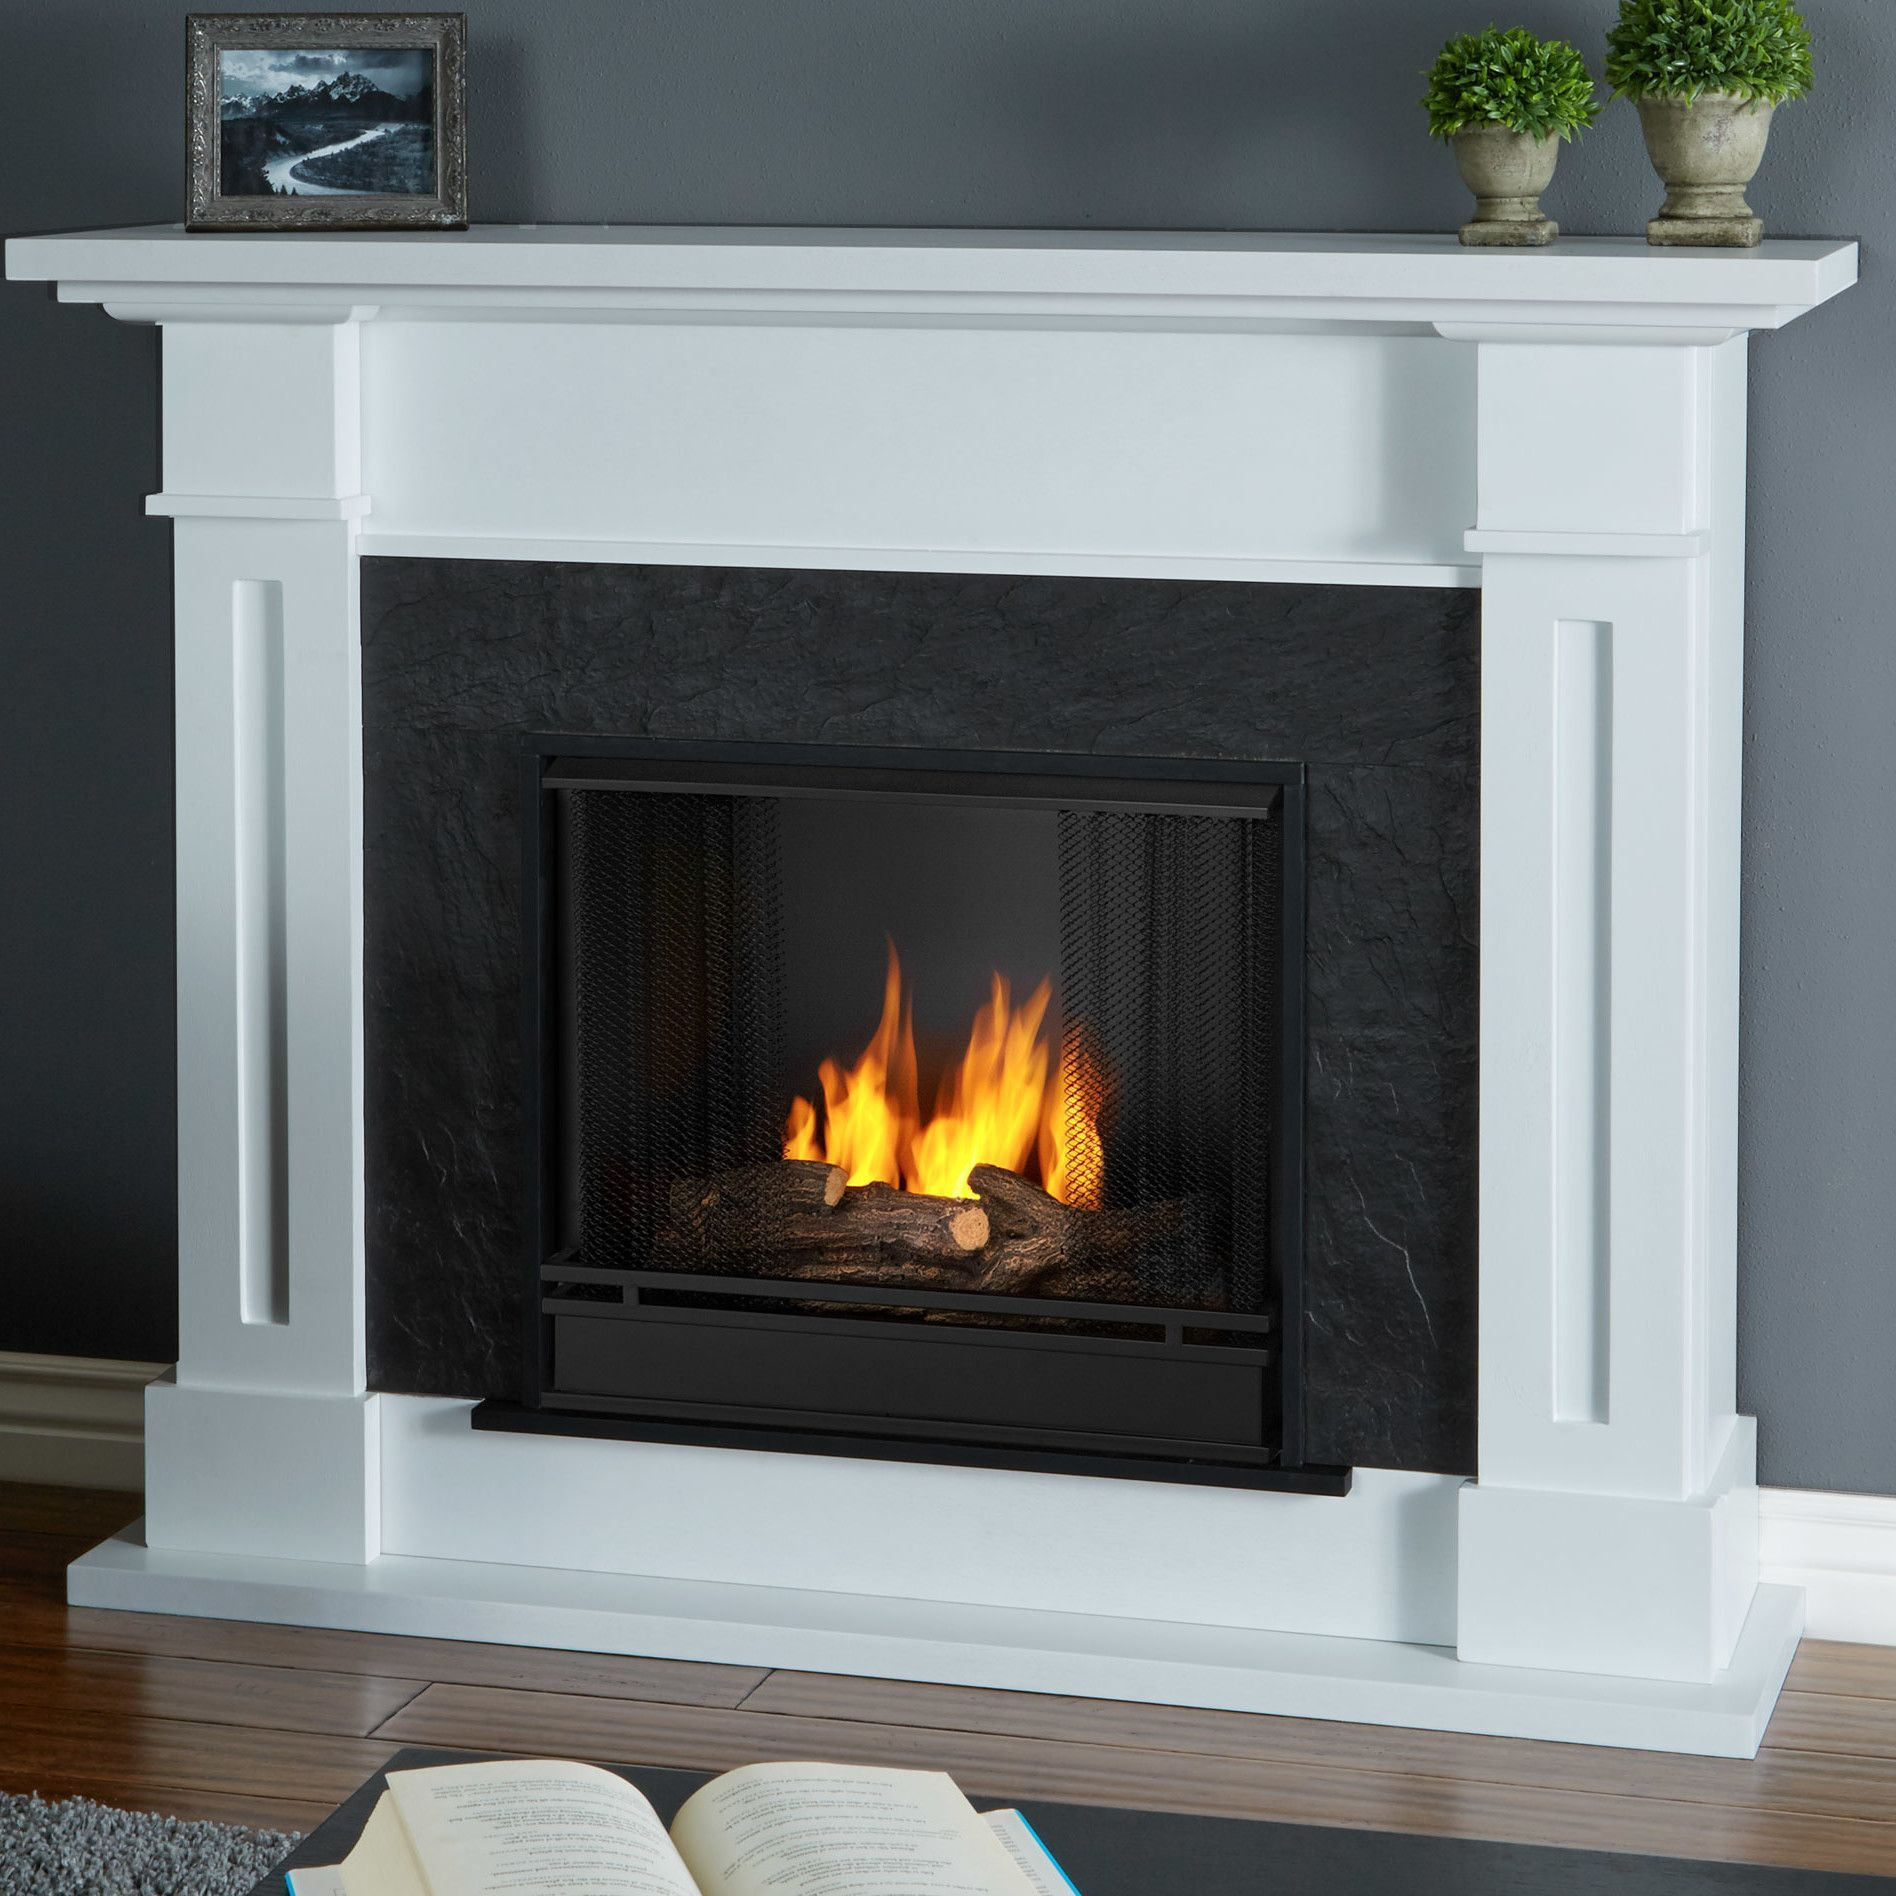 Features Includes Mantel Firebox